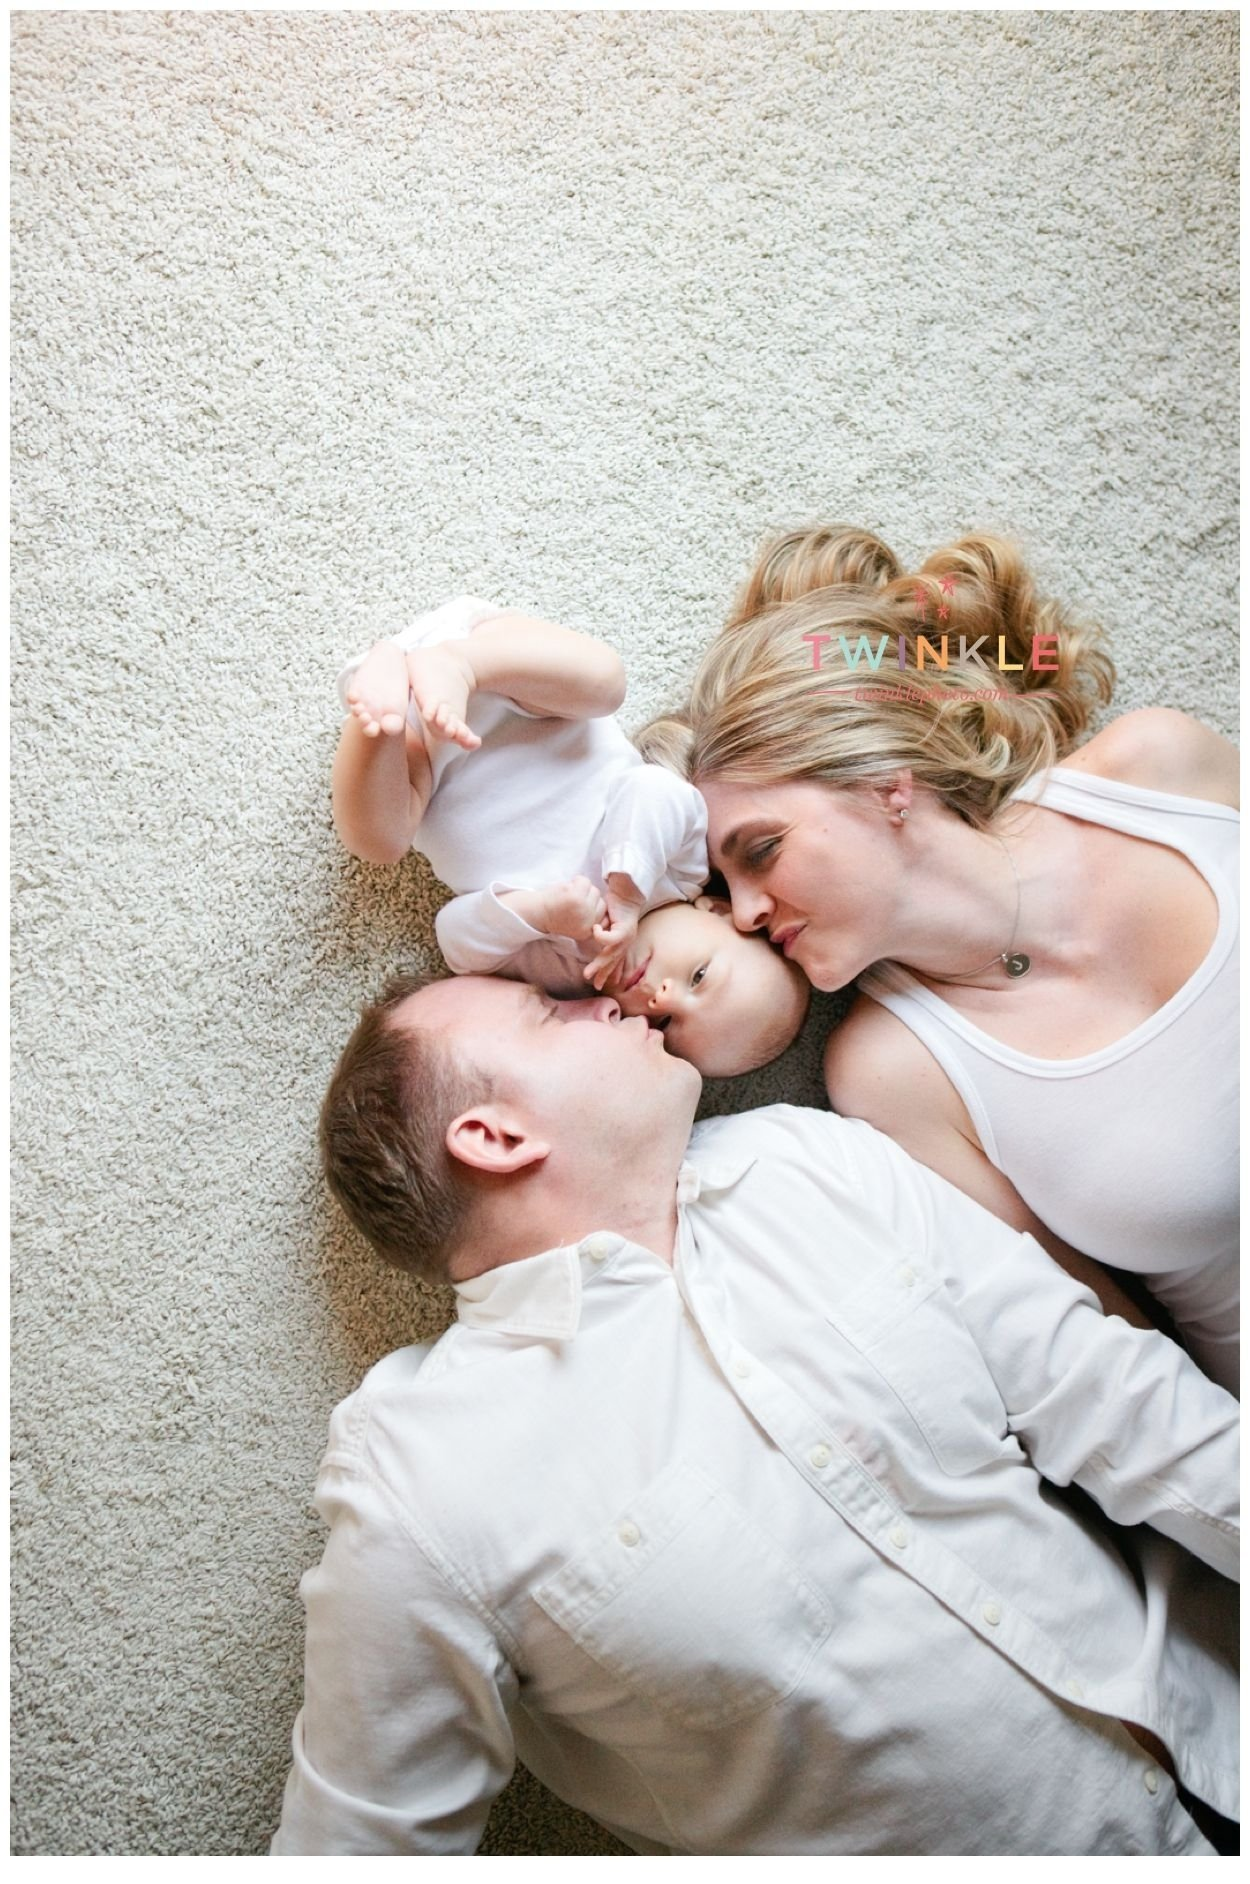 10 Stylish 3 Month Baby Photo Ideas mom and dad with 3 month old boy www twinklephoto photography 2